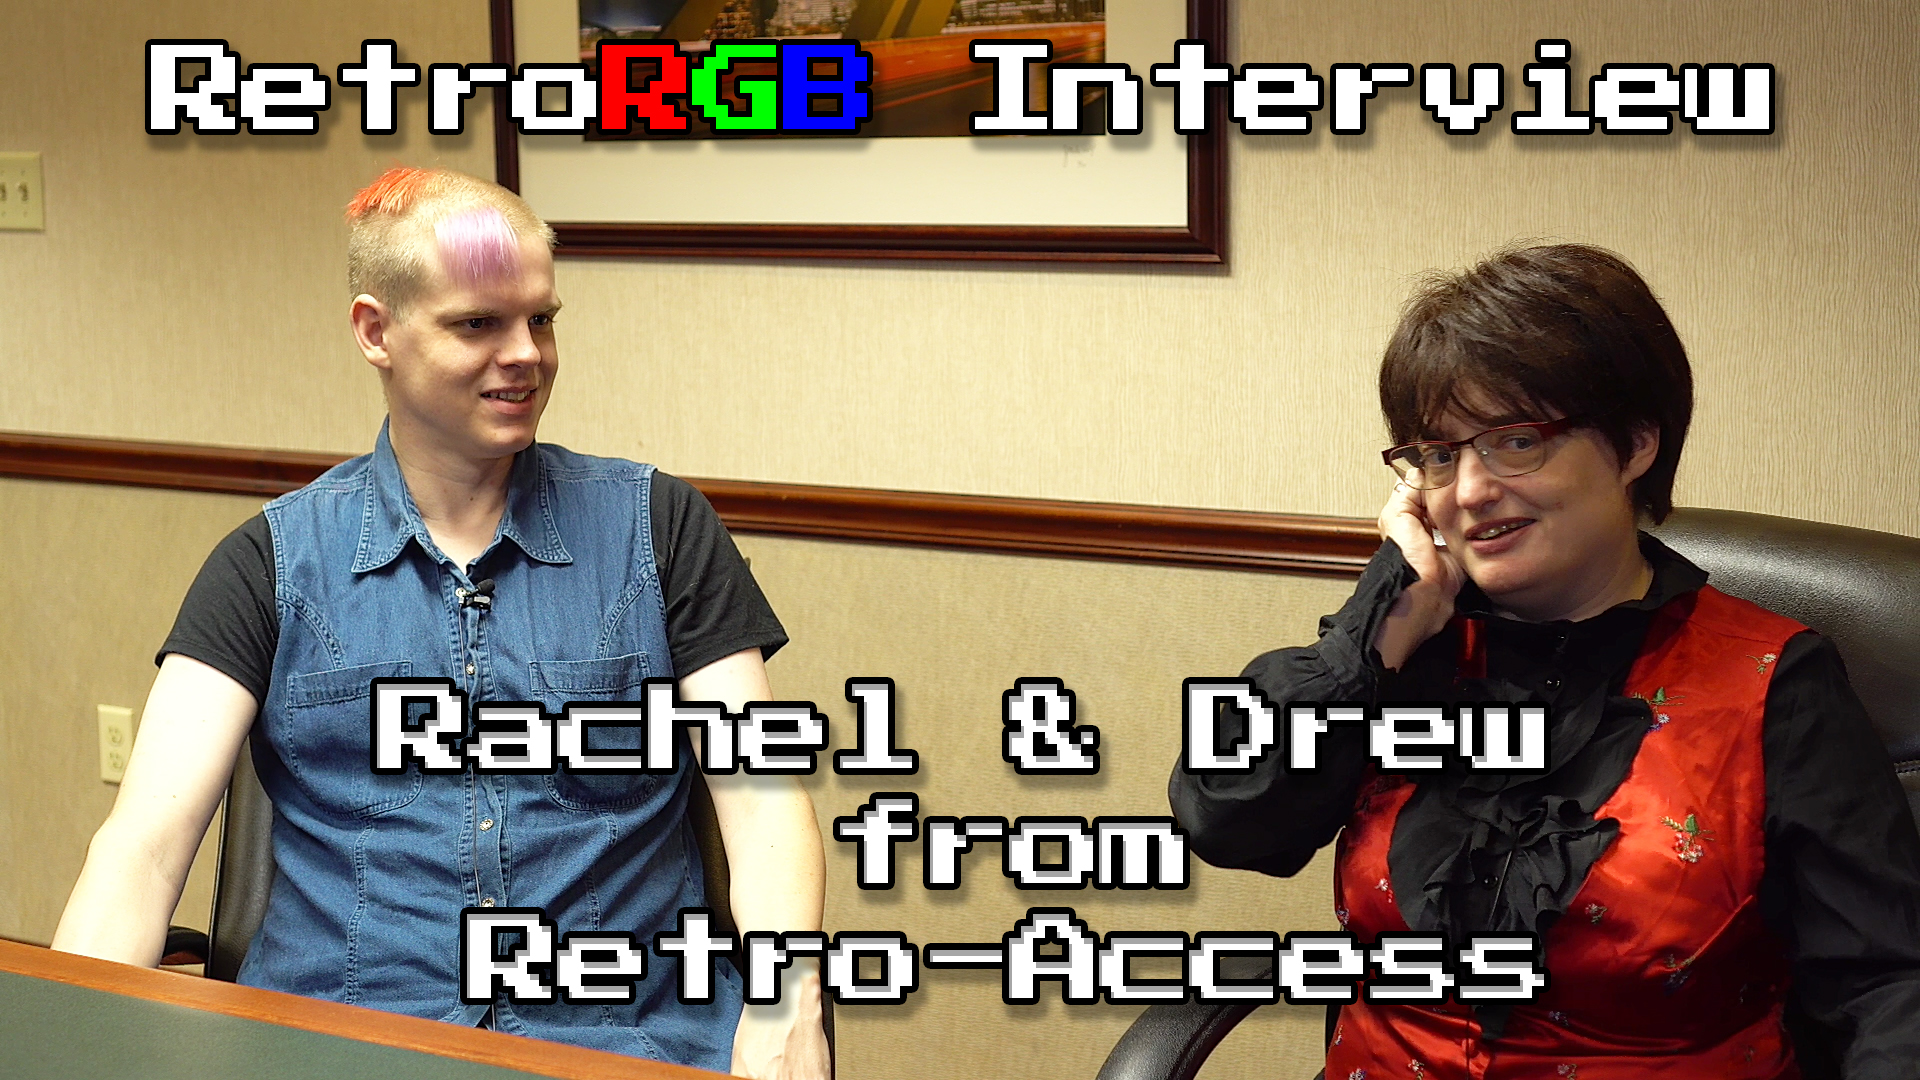 Interview with Retro-Access